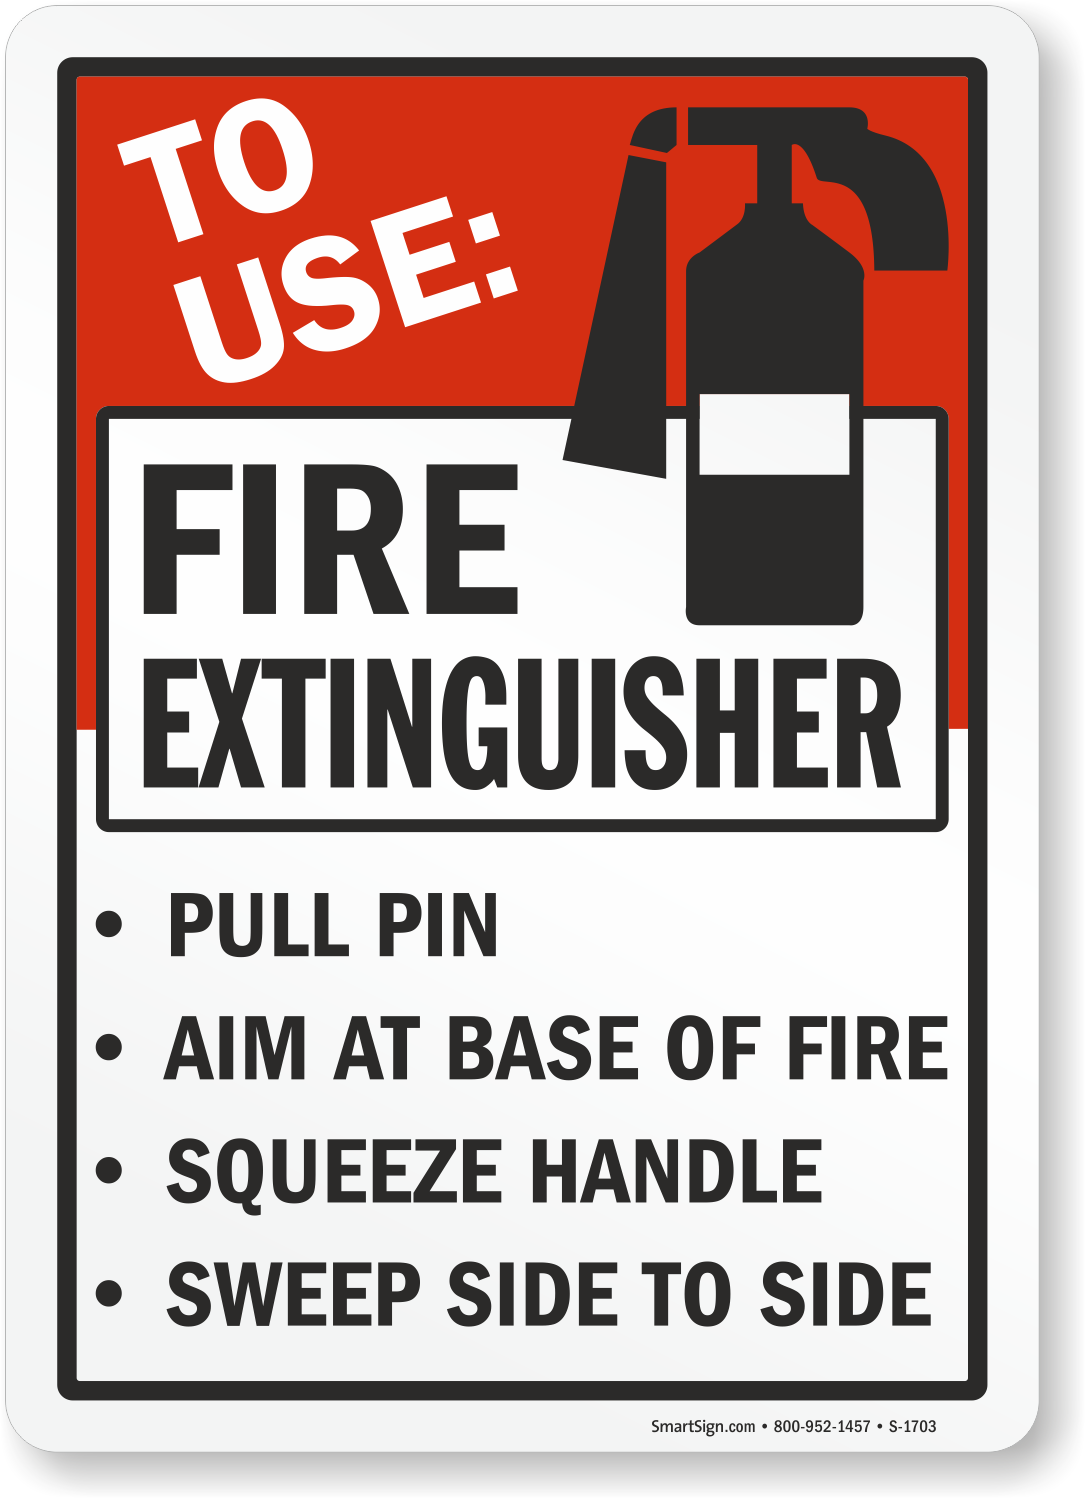 Fire Extinguisher Use Instructions Sign Sku S 1703